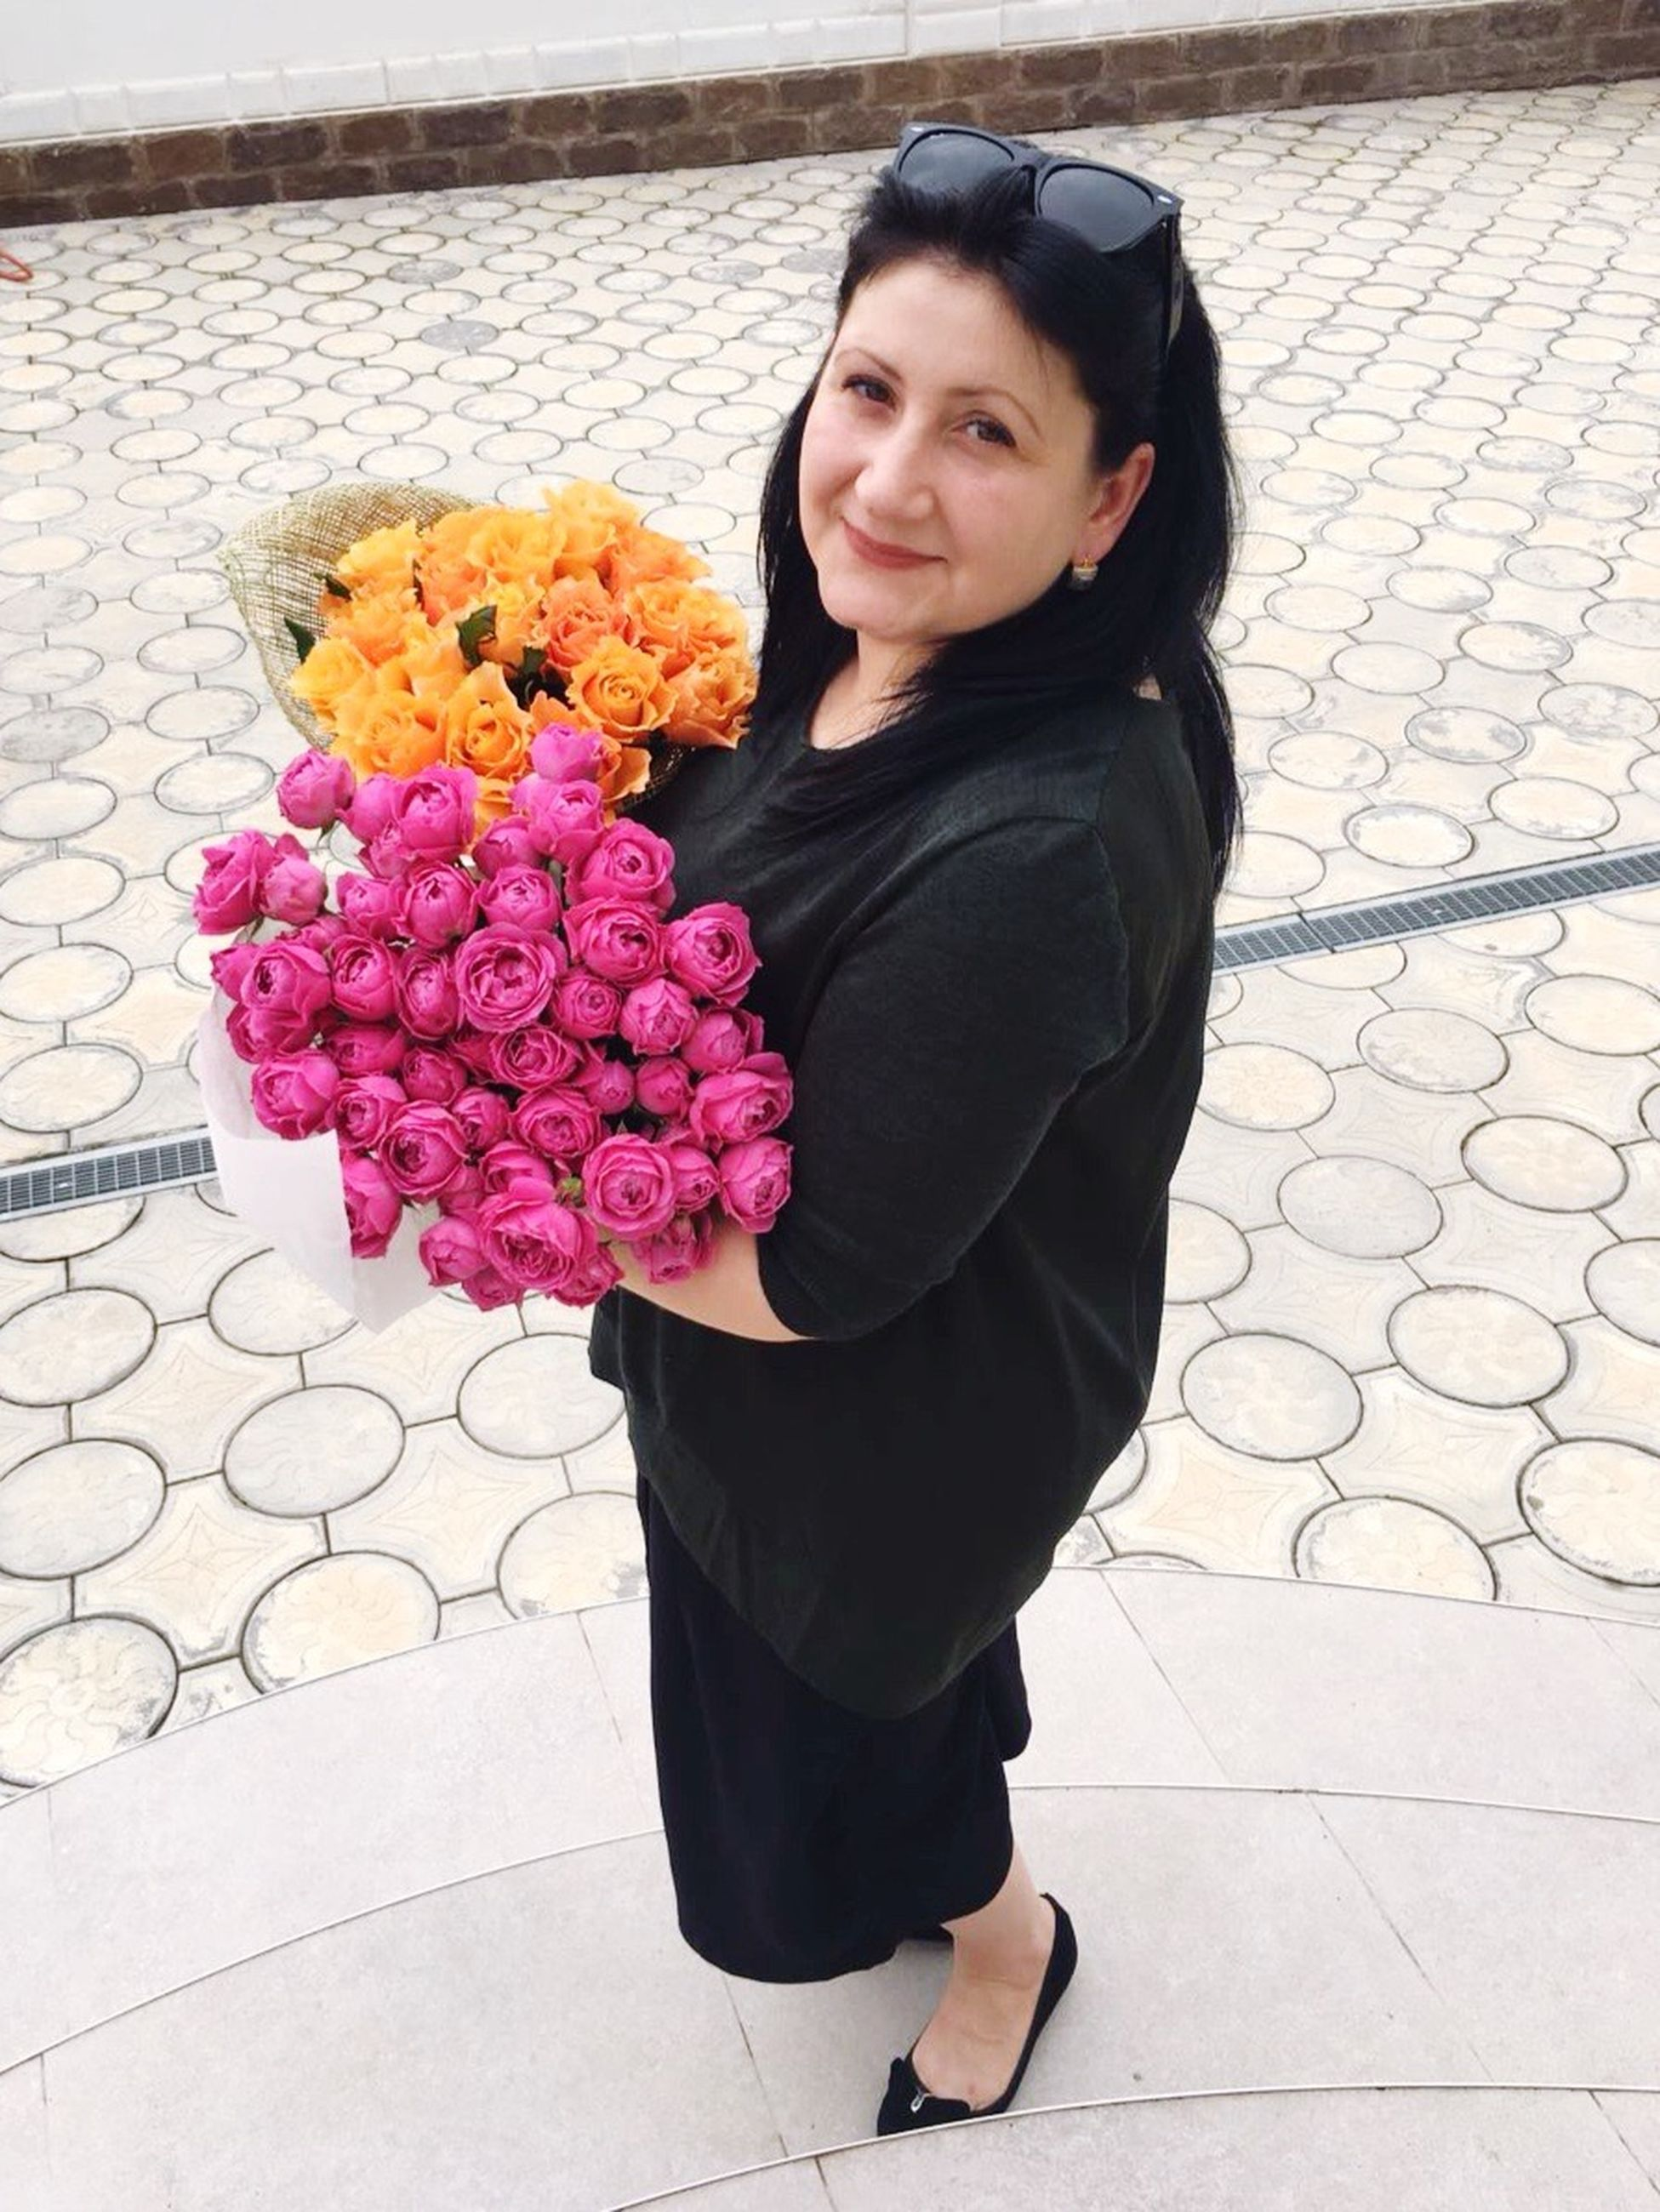 flower, full length, holding, bunch of flowers, standing, lifestyles, casual clothing, leisure activity, long hair, person, front view, freshness, bouquet, innocence, looking at camera